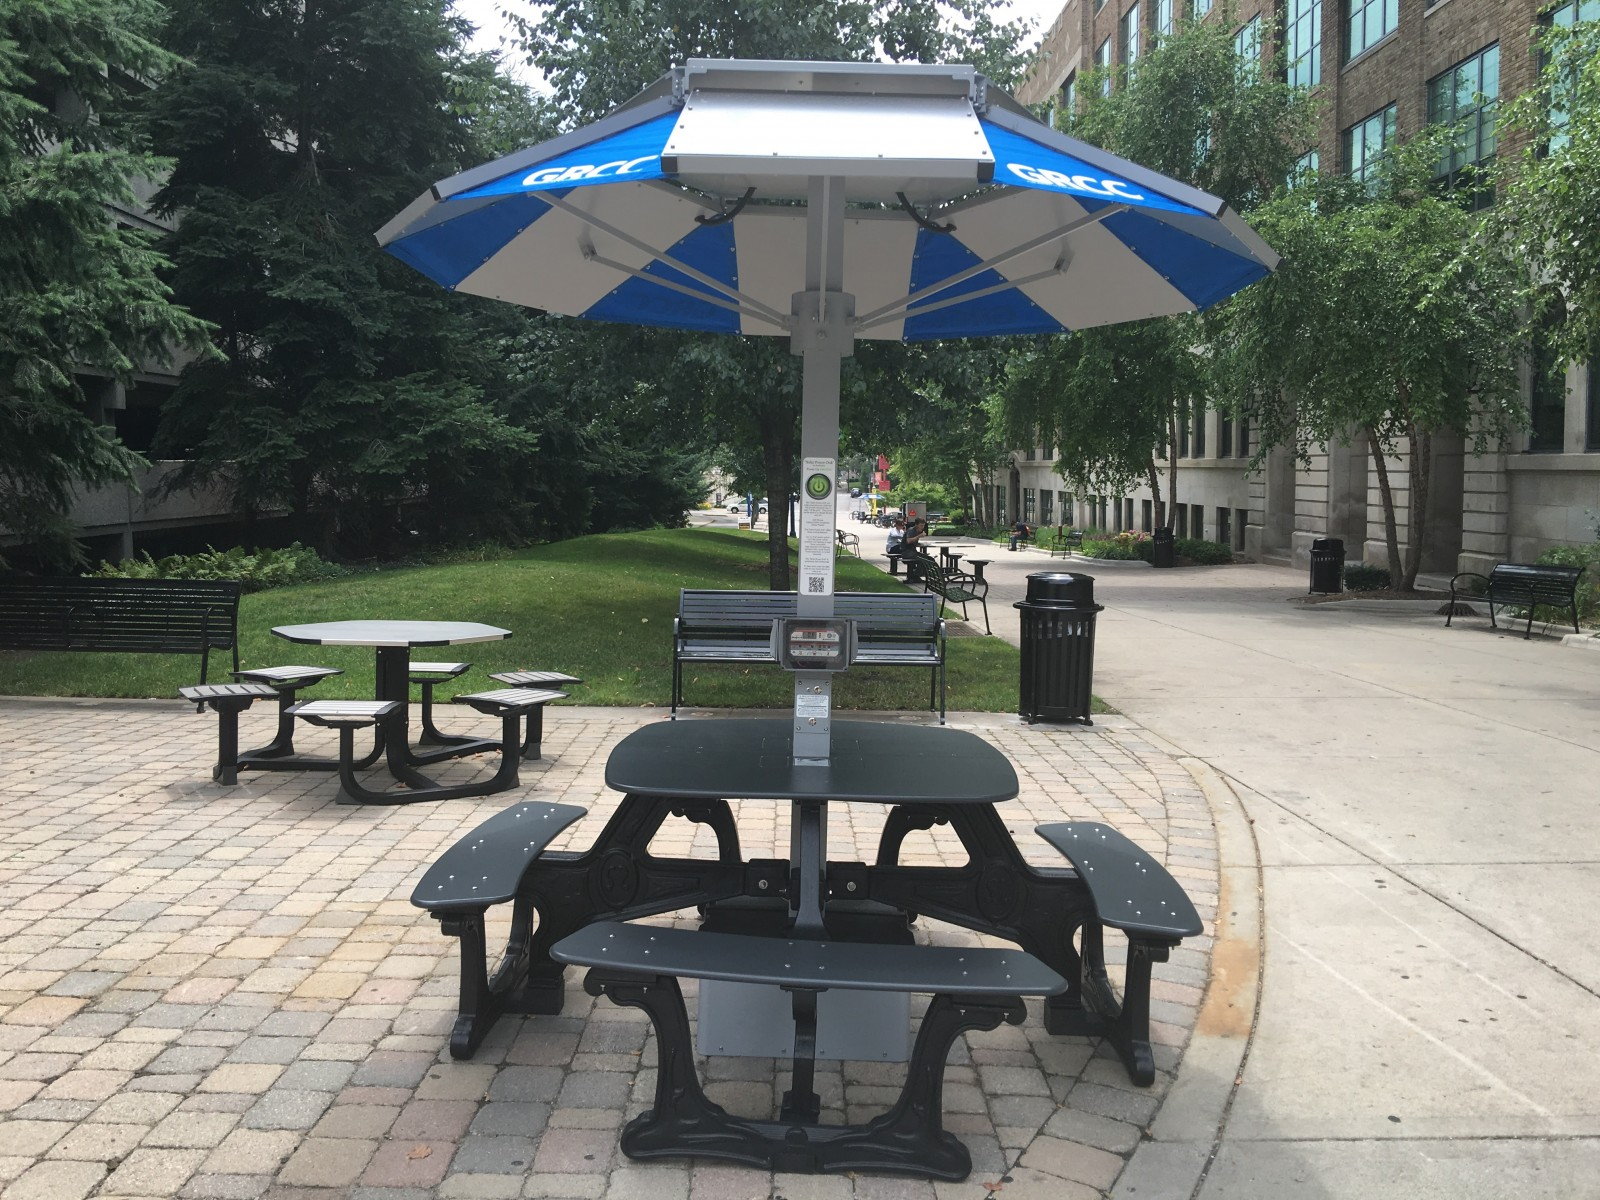 Grcc Installs Solar Powered Tables The Collegiate Live